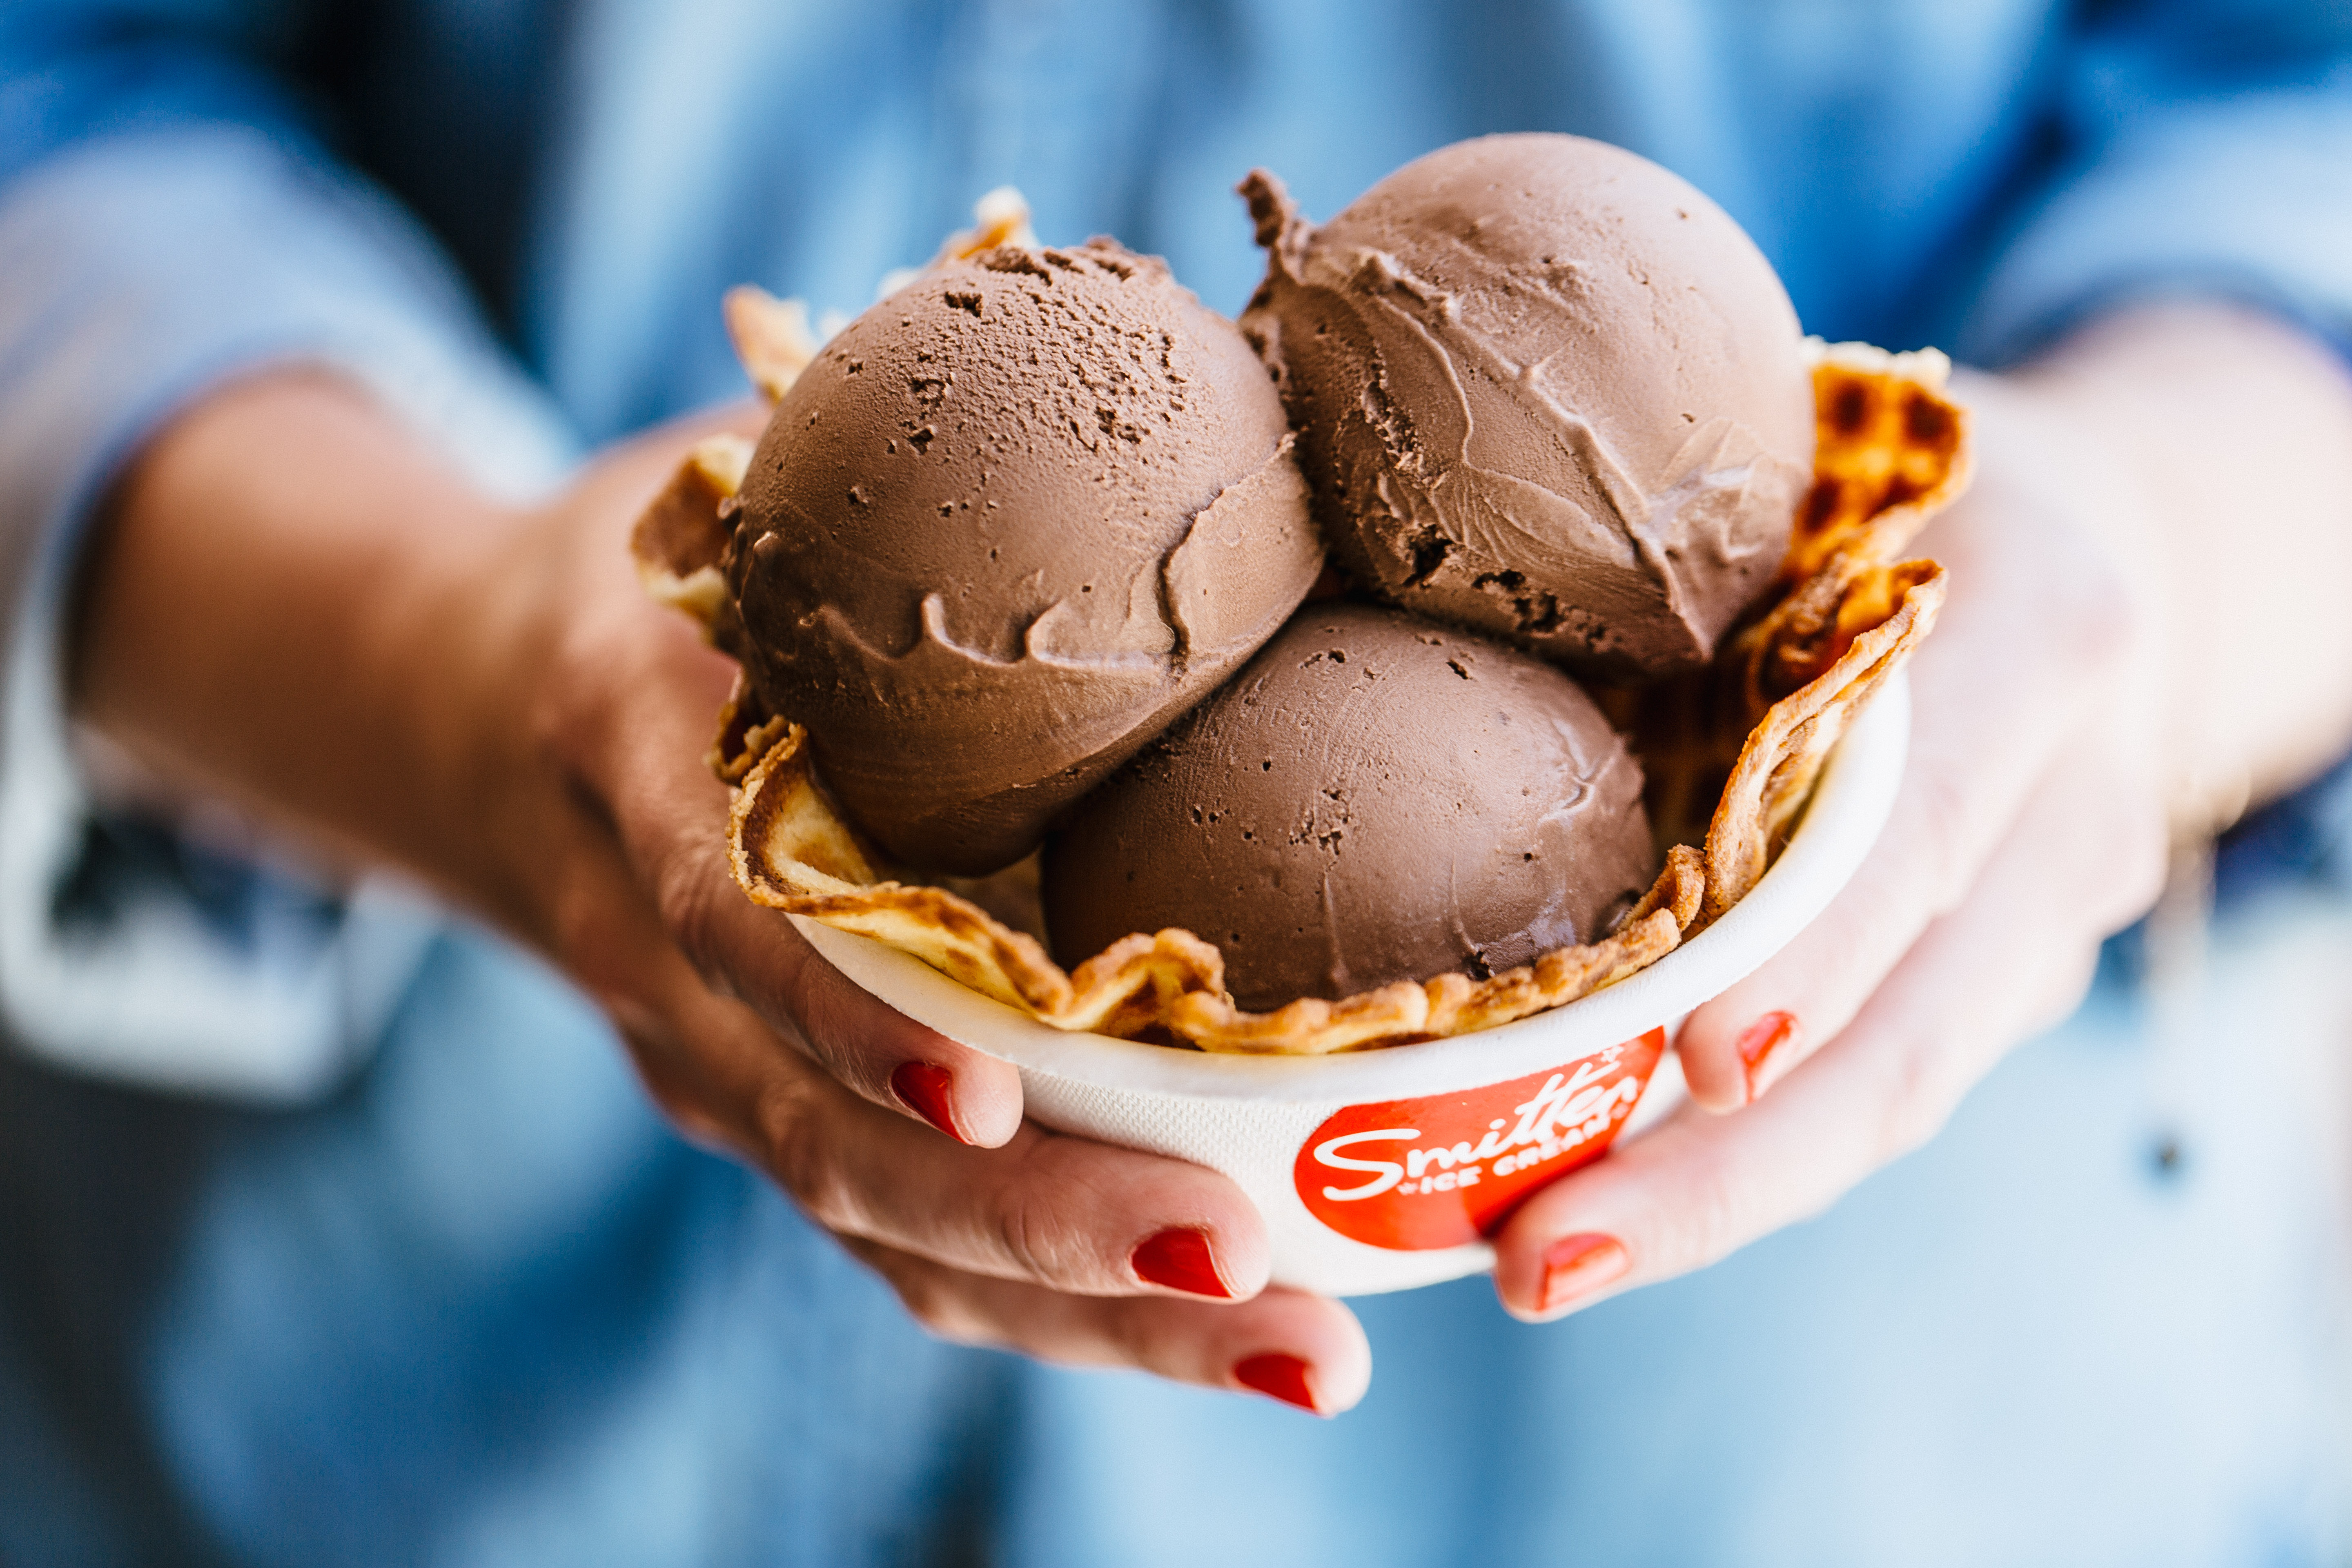 Smitten Ice Cream Logo consume mezcal, ice cream, coffee for charity: this week in food